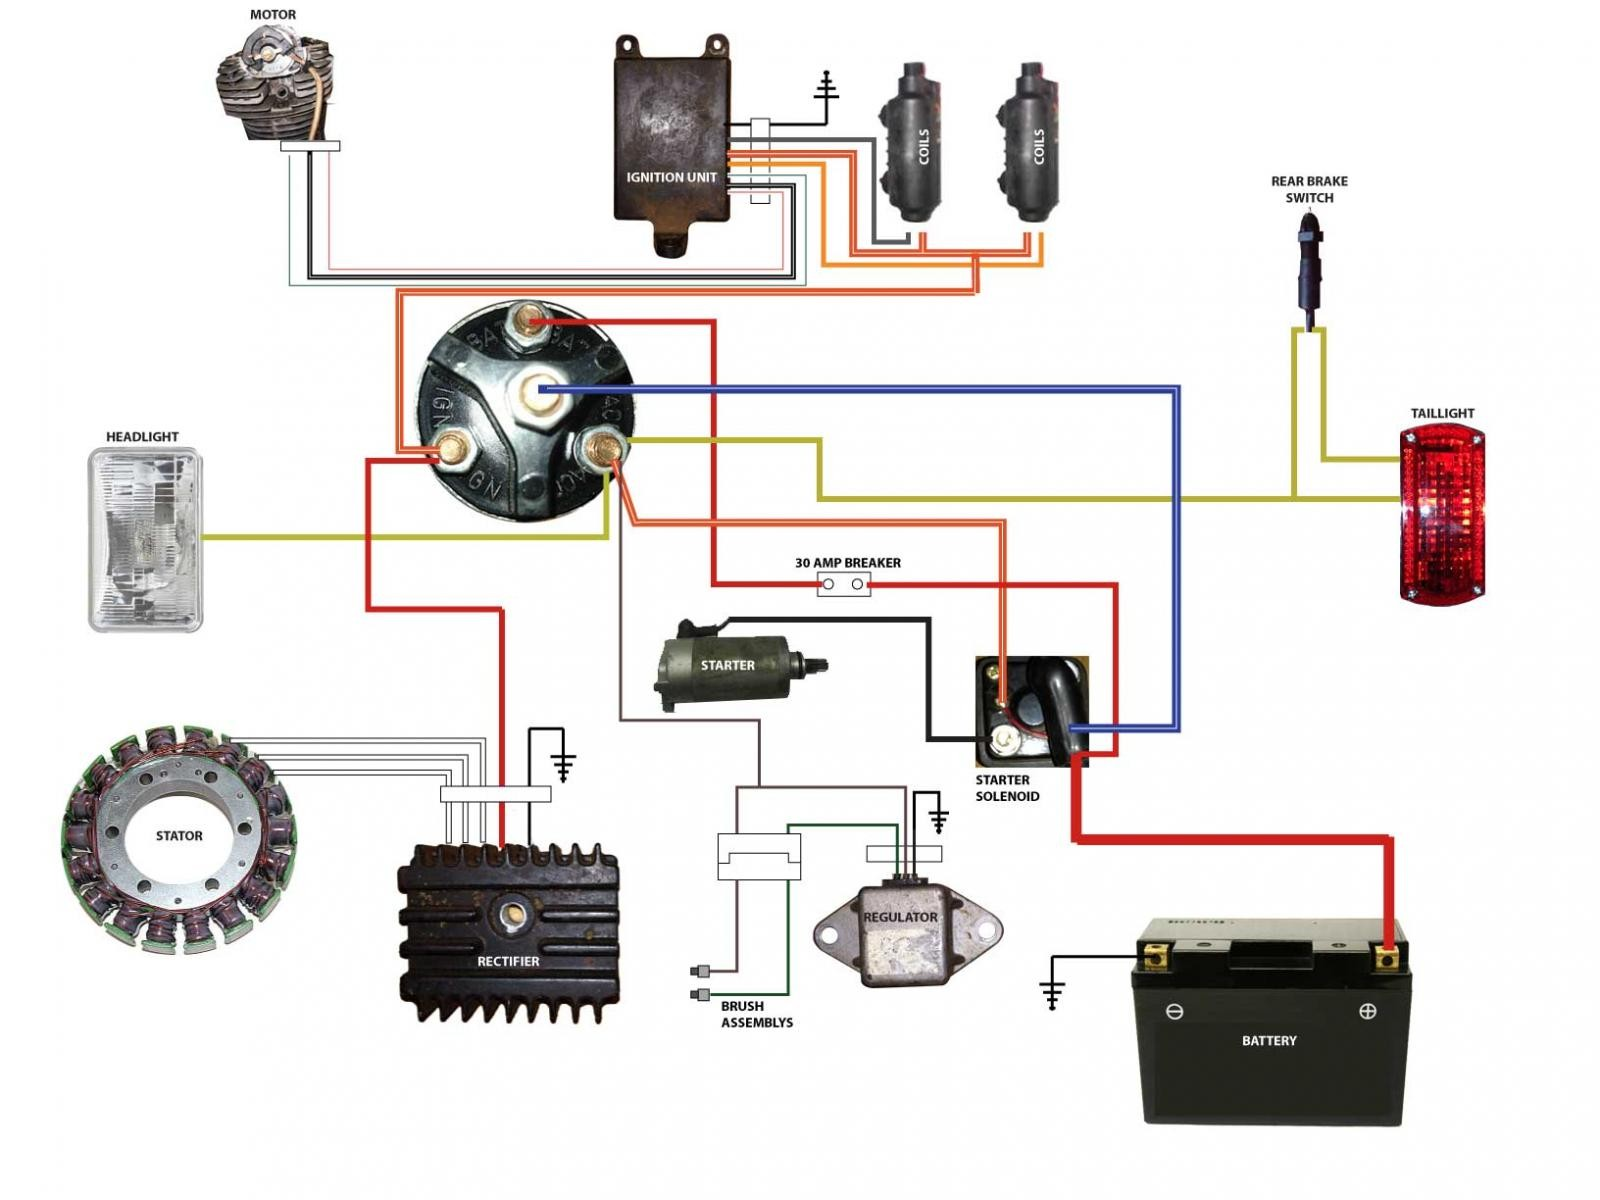 hight resolution of dohc cb750 limited wiring diagram wiring diagrams